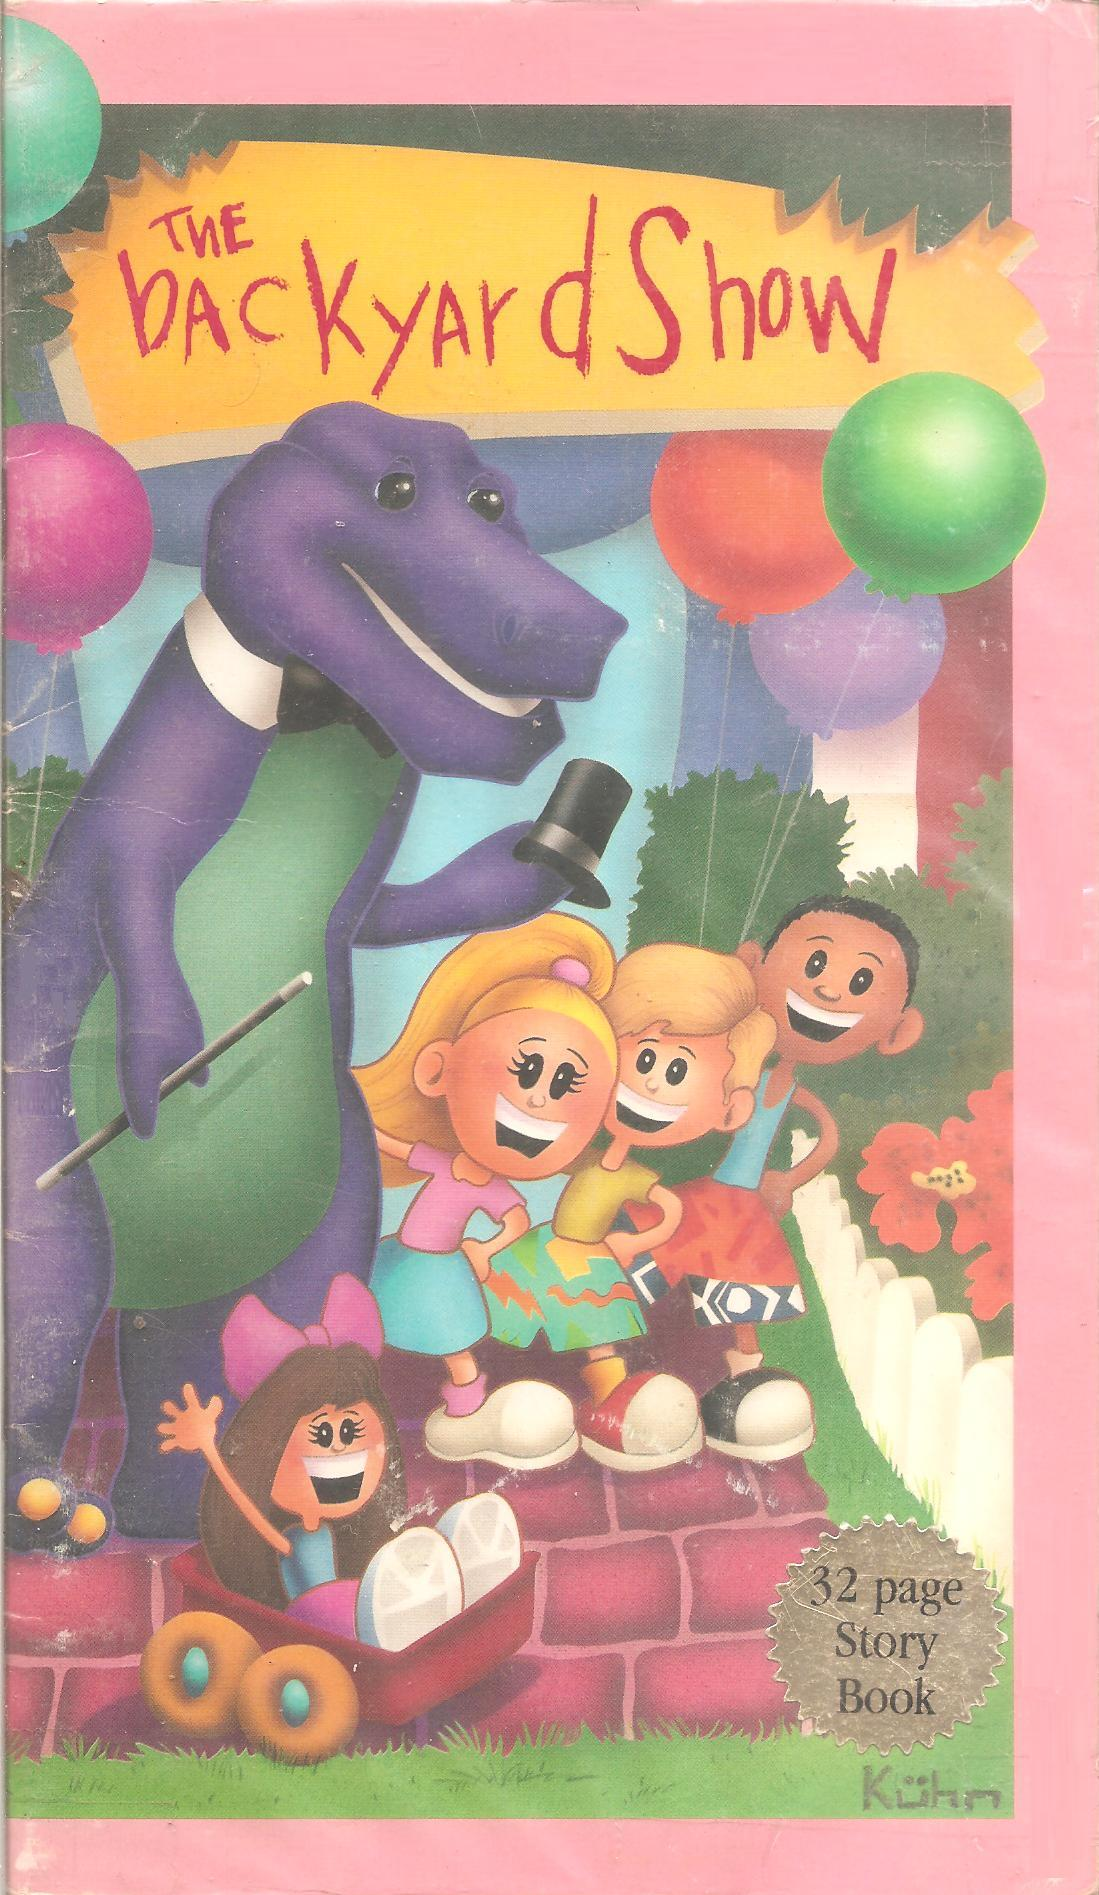 image imagen 013 jpg barney wiki fandom powered by wikia